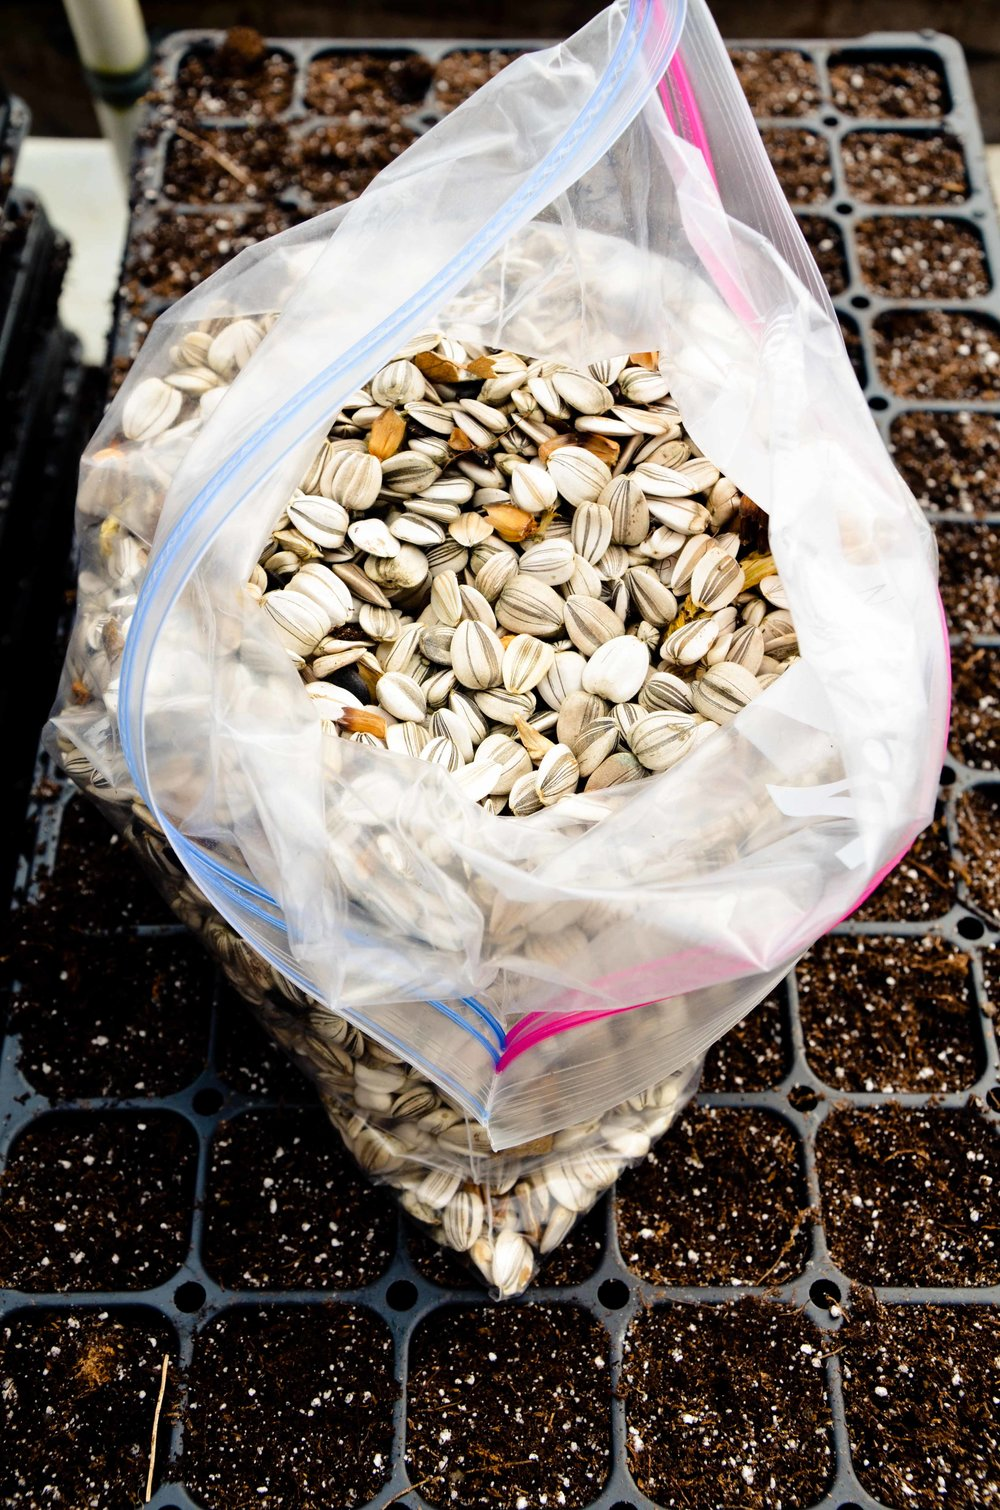 sunflower seeds.jpg